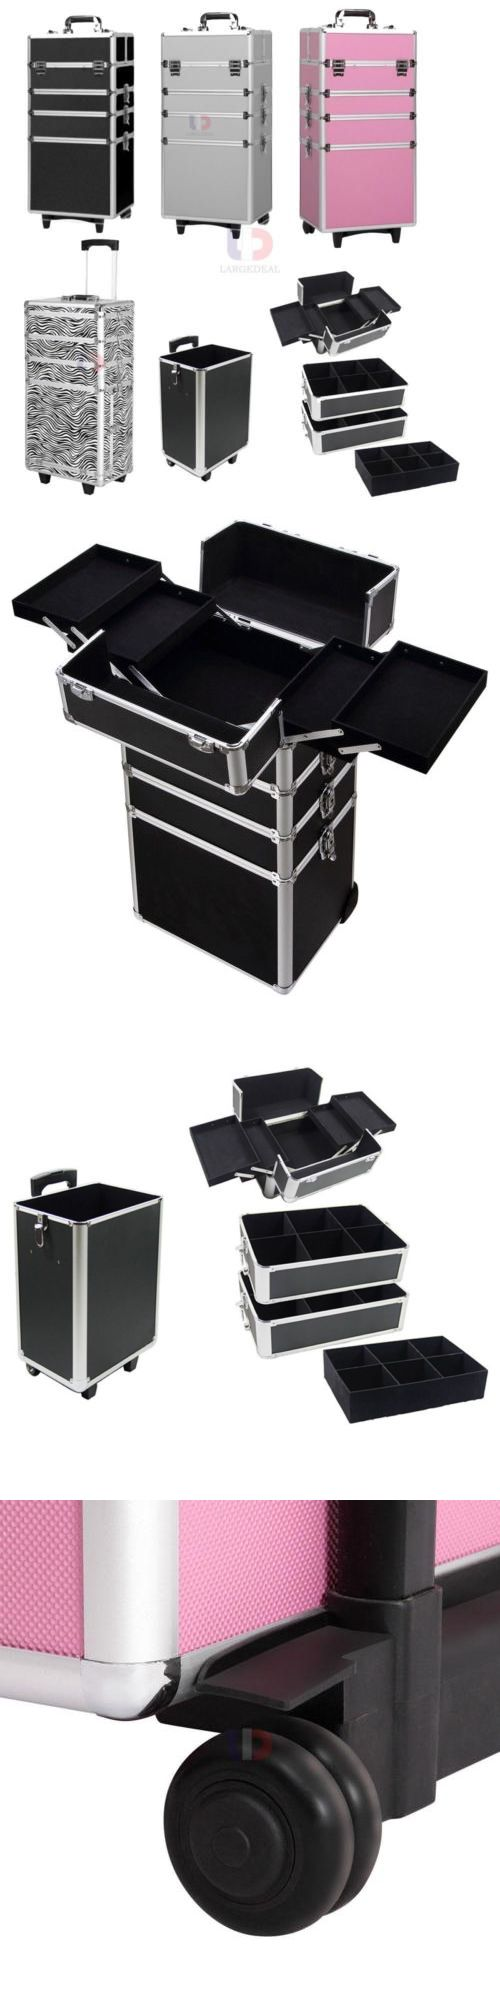 Makeup Bags and Cases: 4In 1 Rolling Aluminum Makeup Case Cosmetic Train Box Wheeled Storage Lockable BUY IT NOW ONLY: $69.34